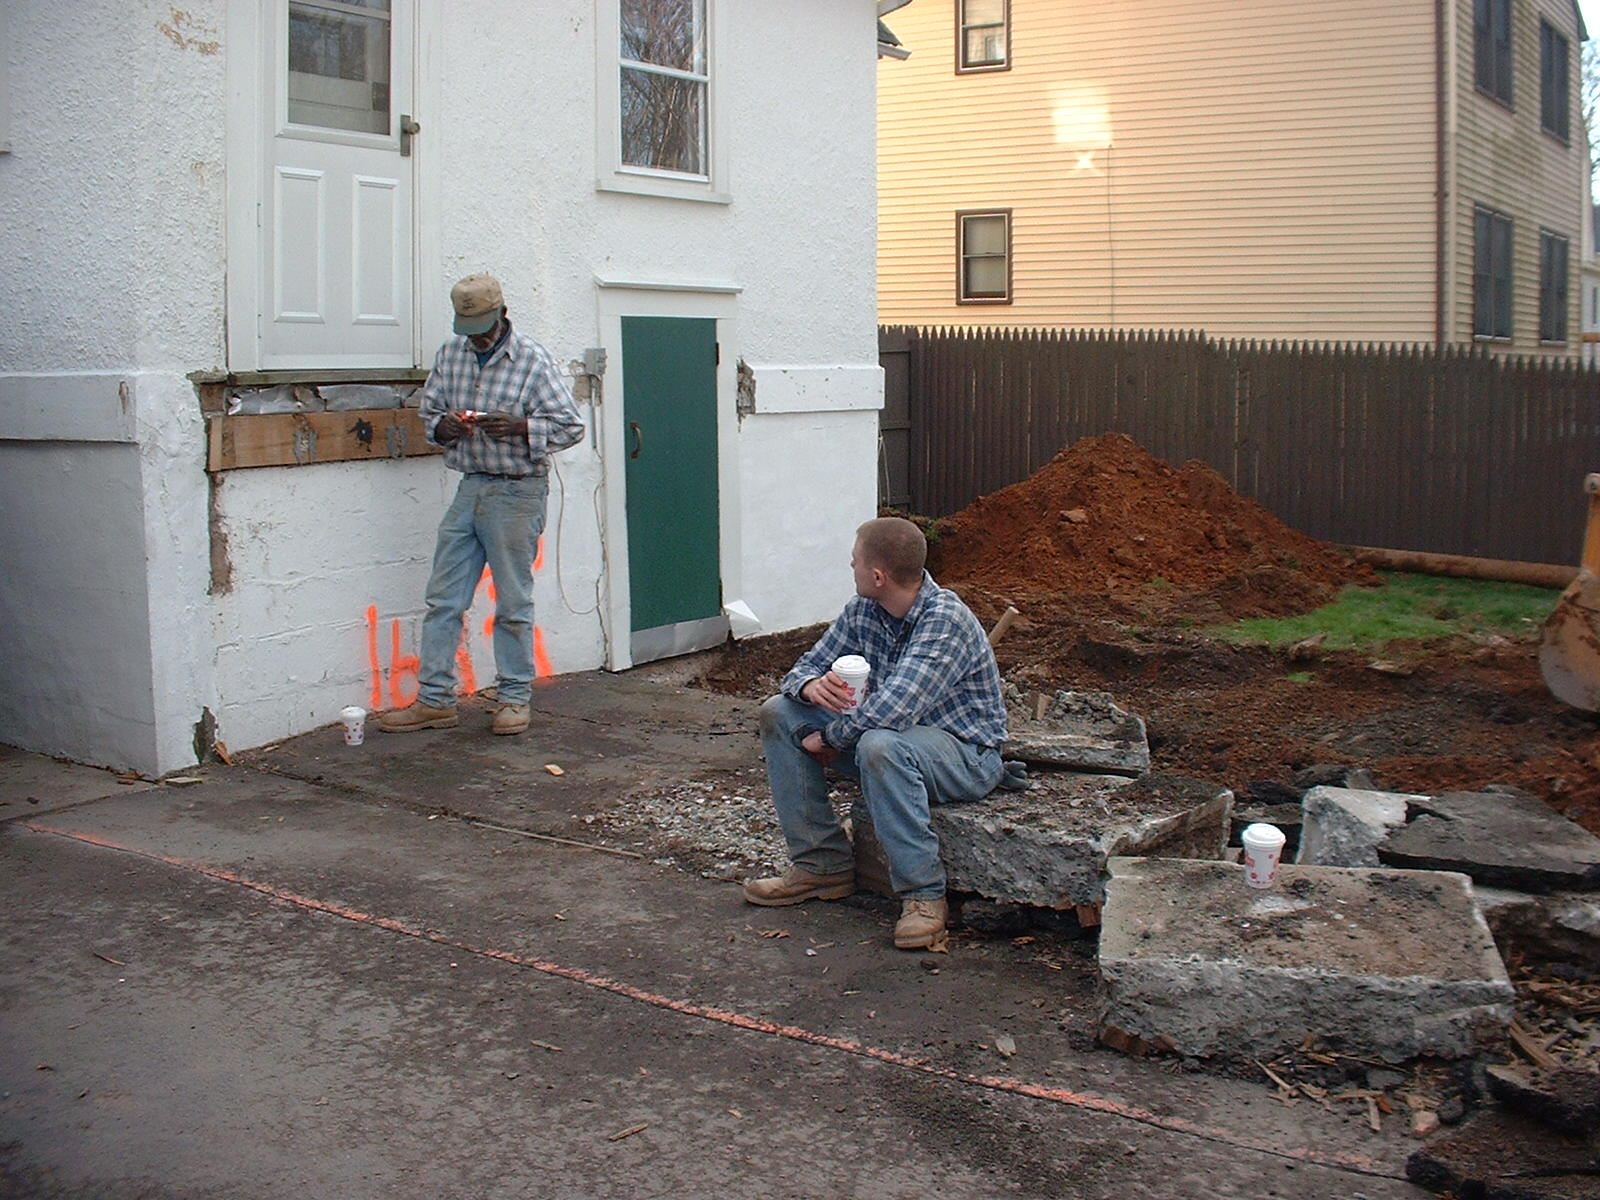 Trevor and Willie taking another break after taking out that giant piece of concrete.